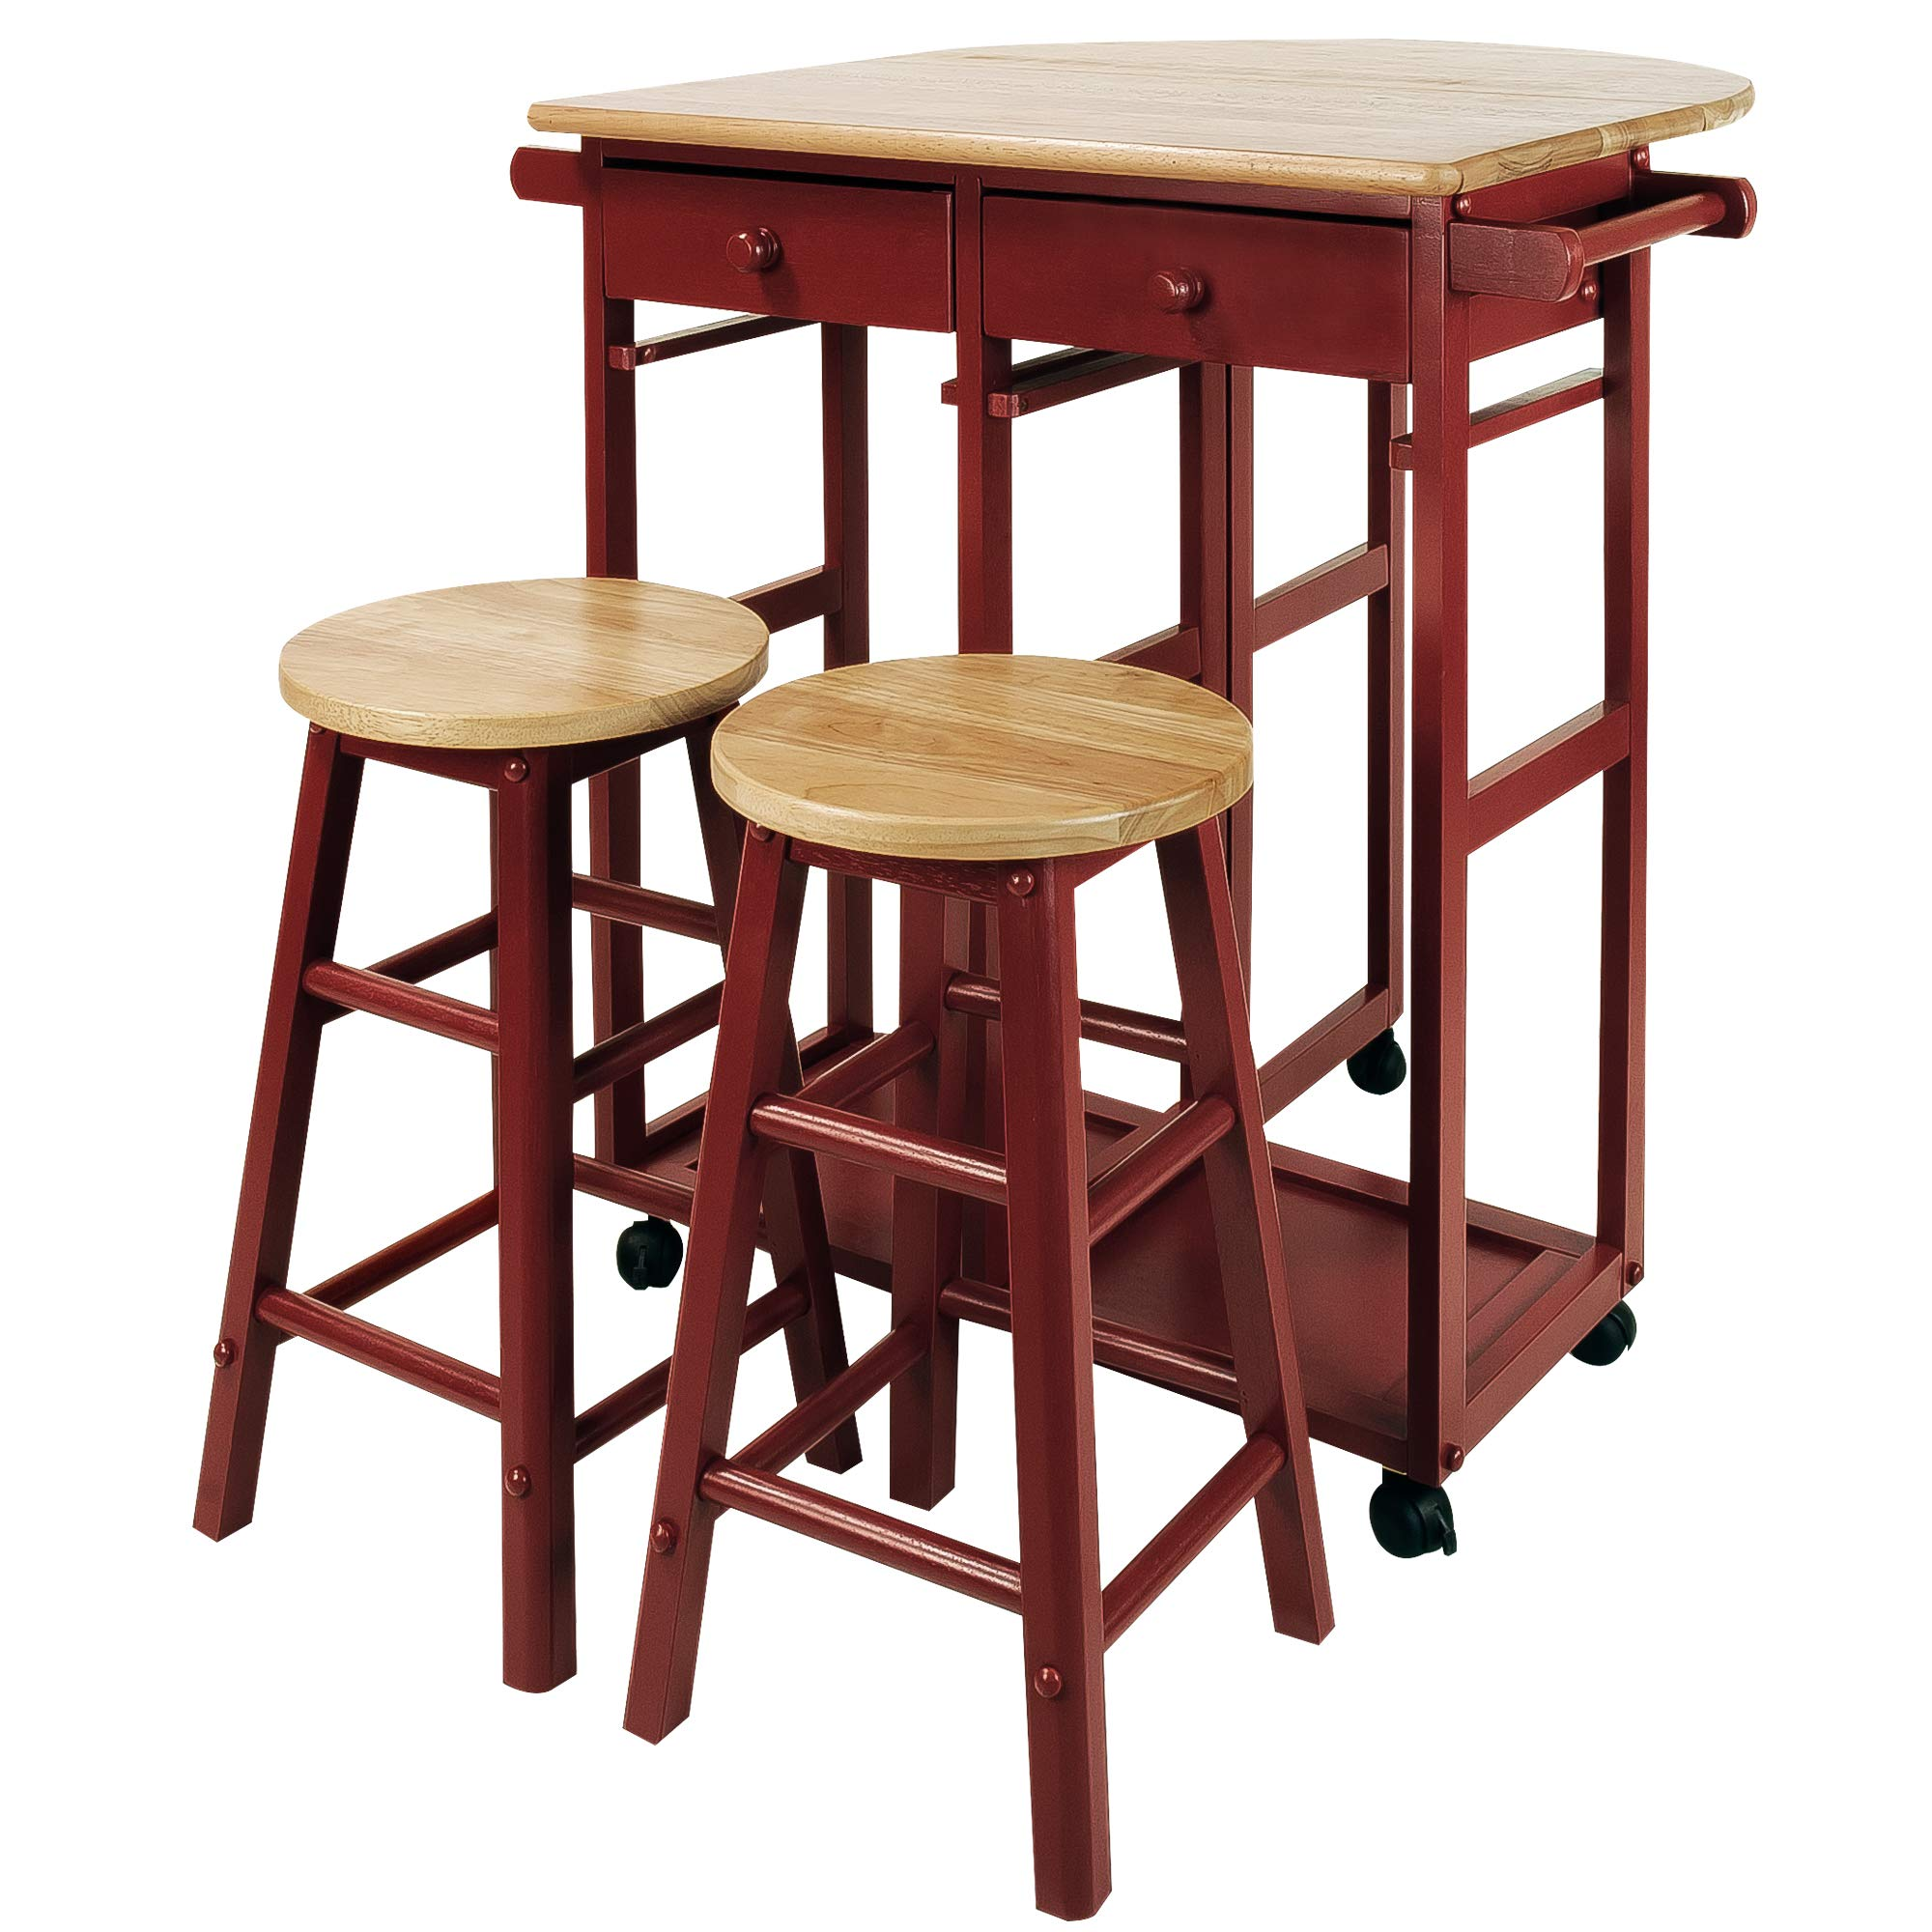 Casual Home Drop Leaf Breakfast Cart with 2 Stools-Red by Casual Home